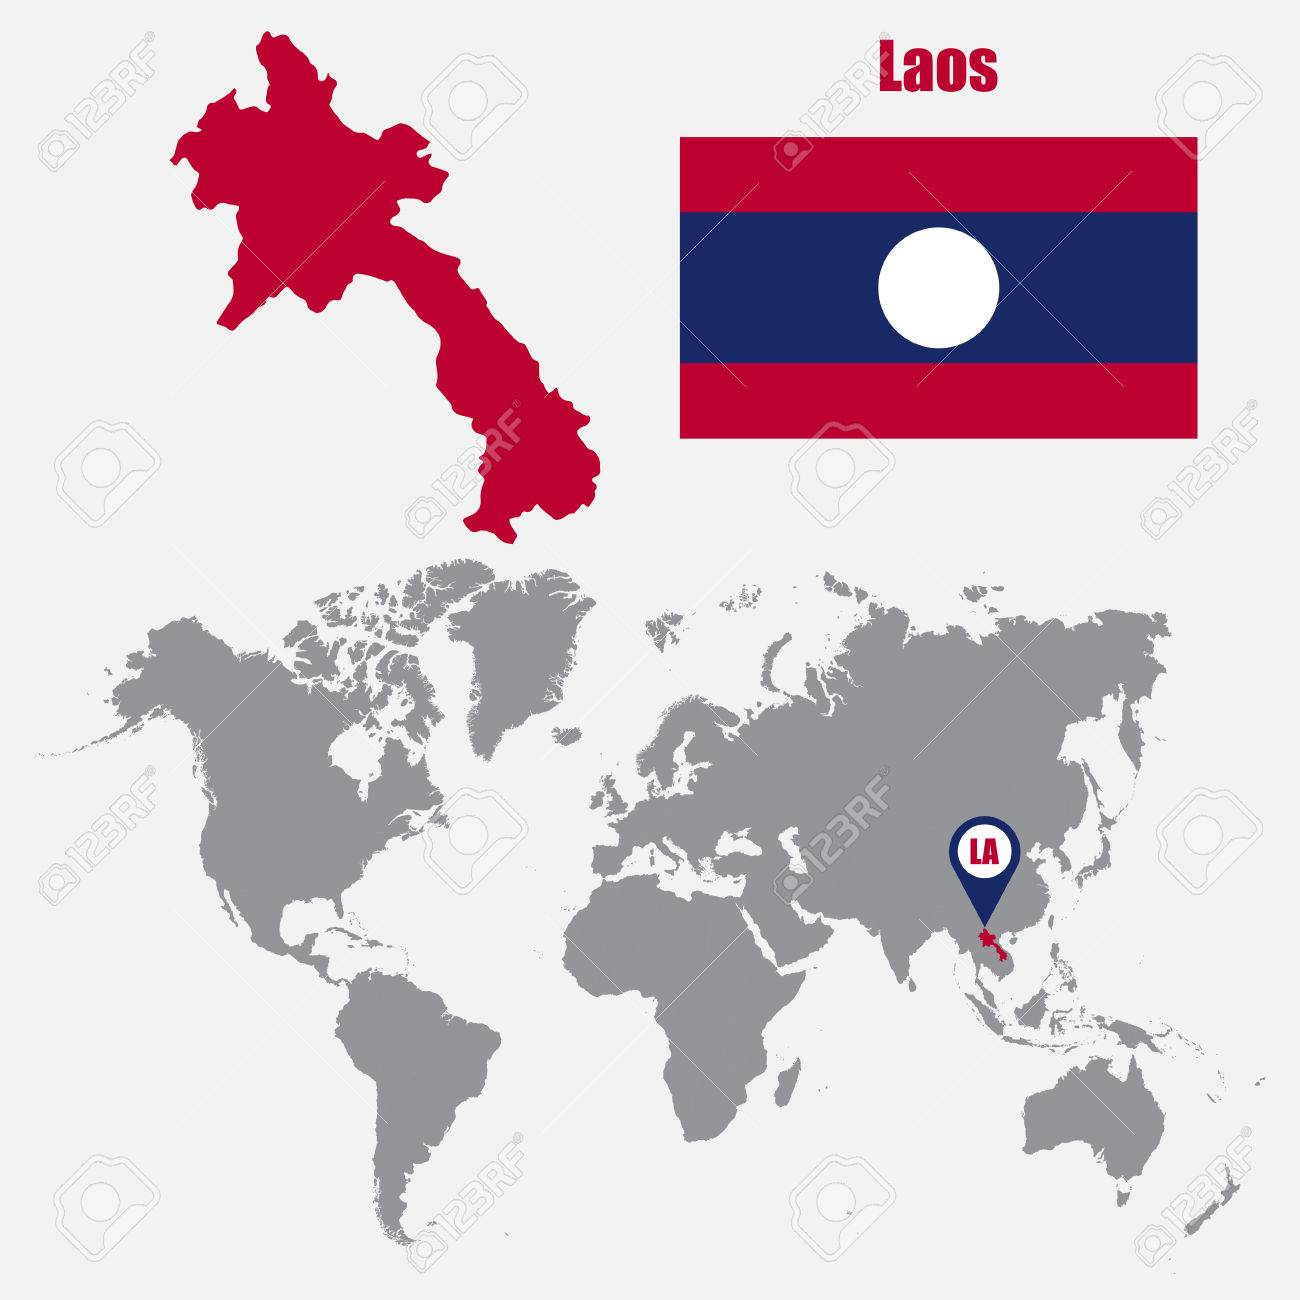 Laos On A World Map.Laos Map On A World Map With Flag And Map Pointer Vector